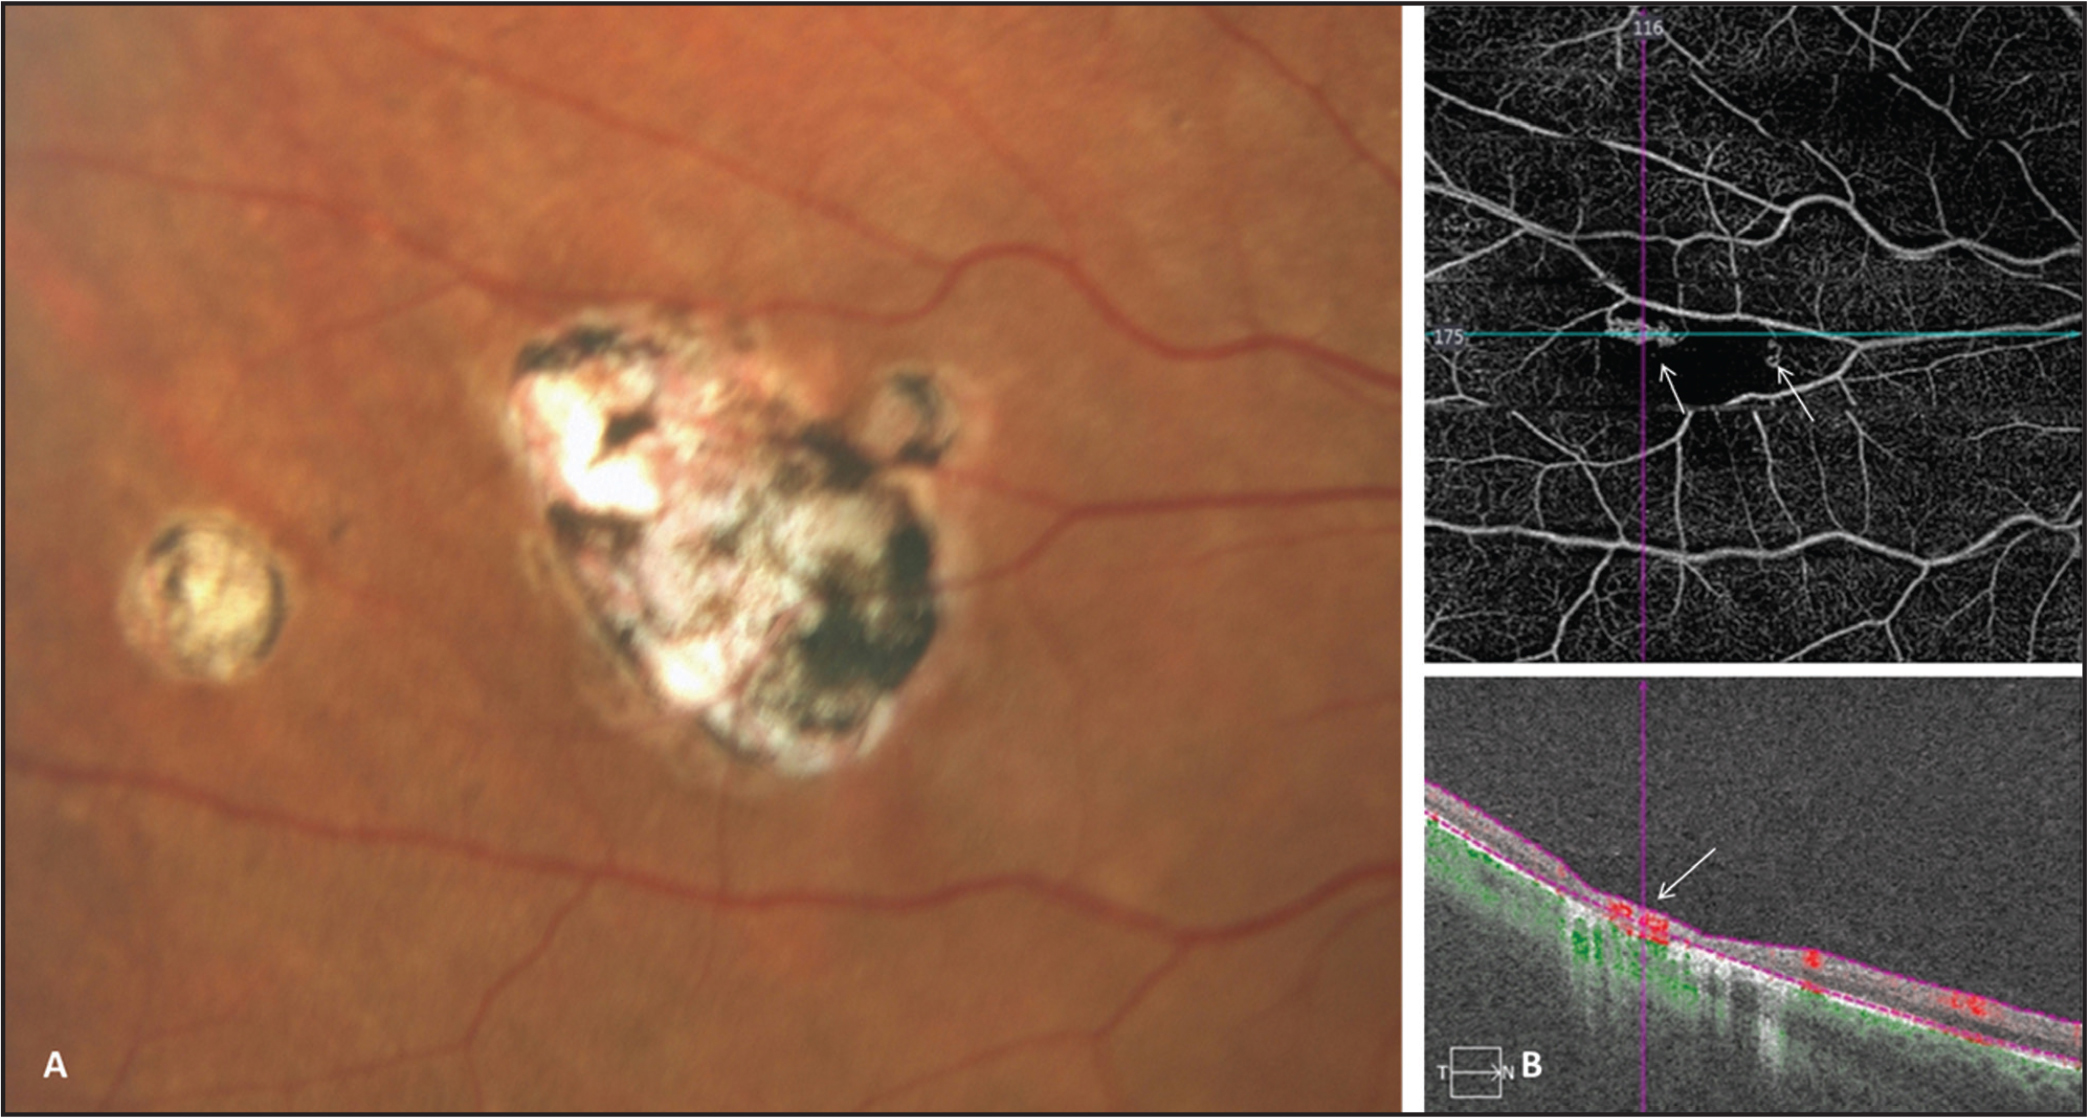 What is the standard treatment for retinal scarring?